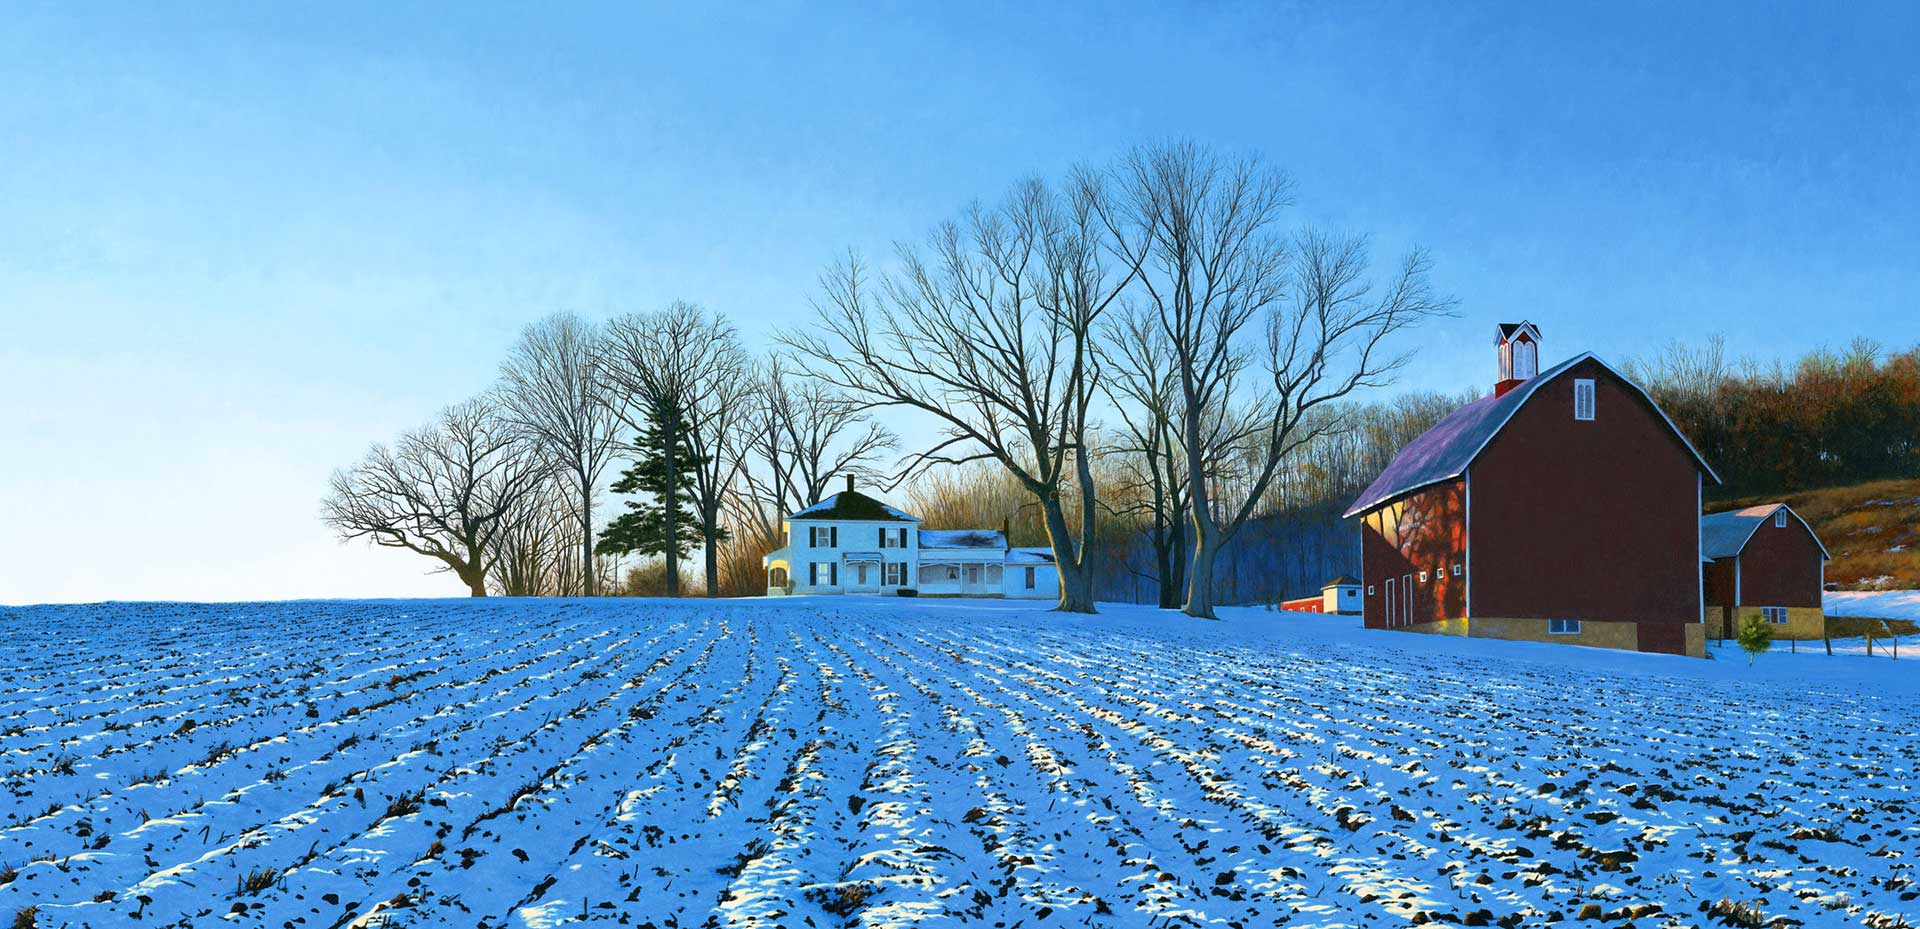 Winter at the Donald Farm, 2002